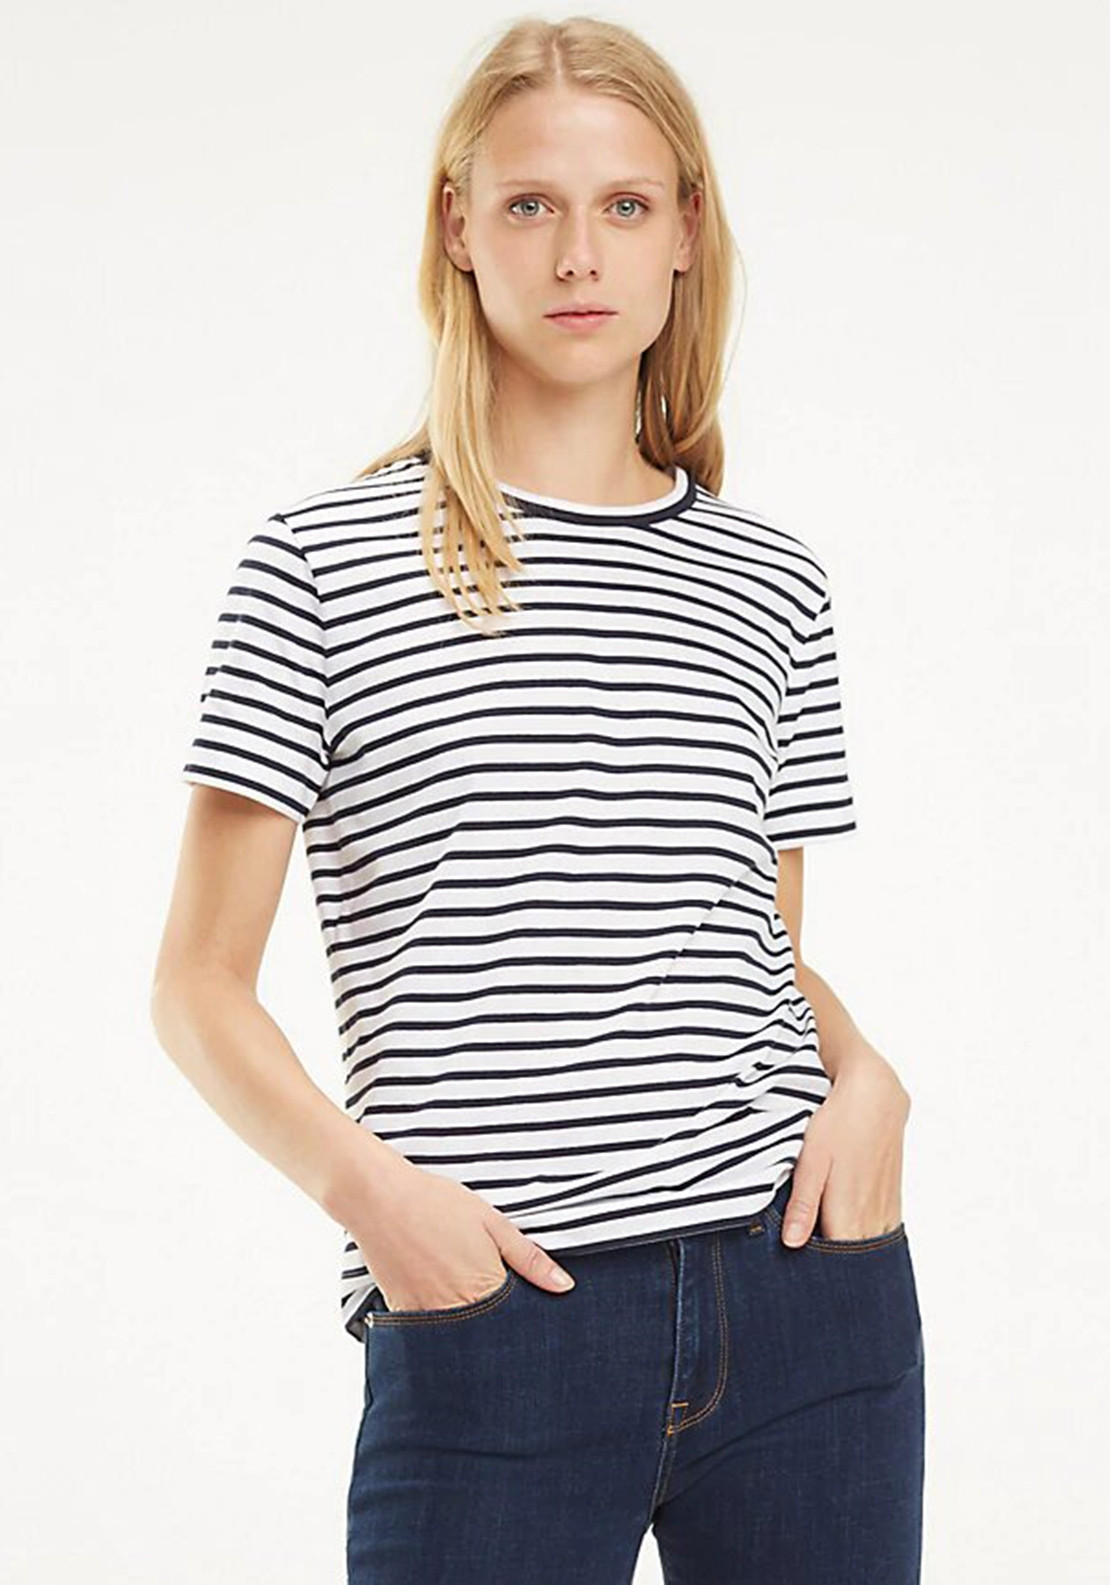 077d5b95 Tommy Hilfiger Womens Relaxed T-Shirt, Navy & White. Be the first to review  this product